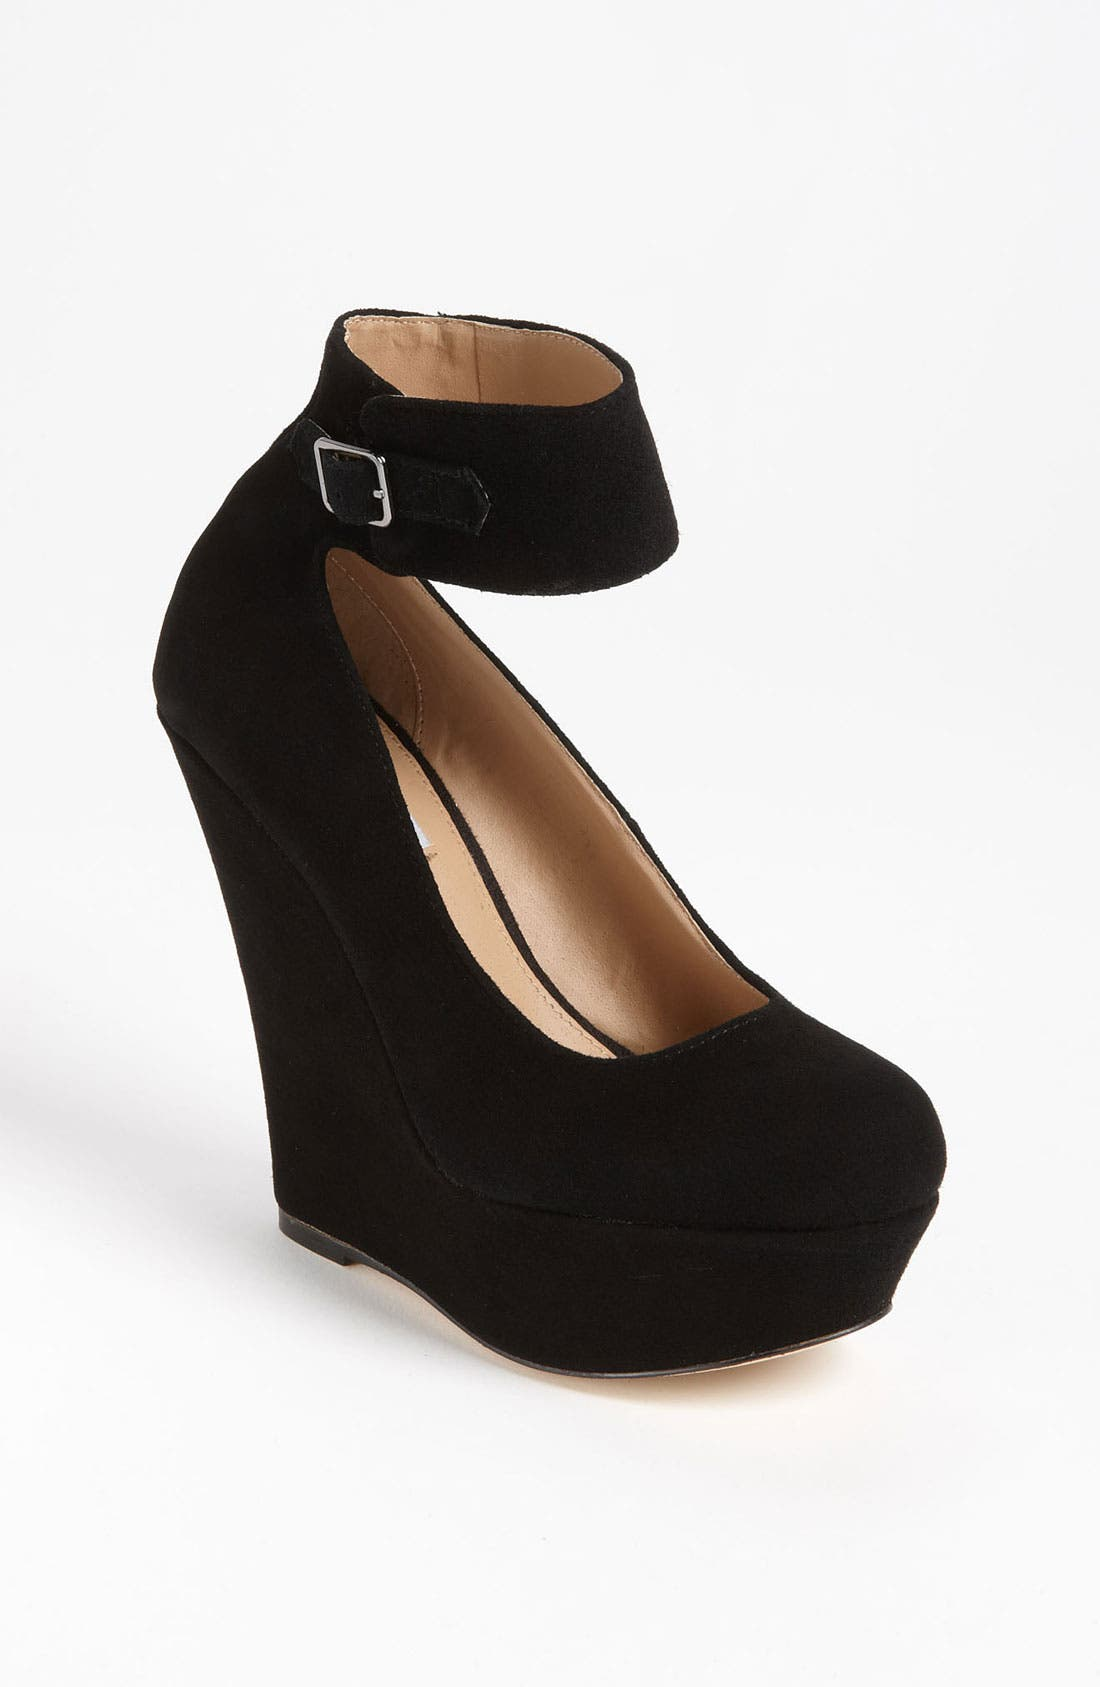 Alternate Image 1 Selected - Steve Madden 'Pattii' Wedge Pump